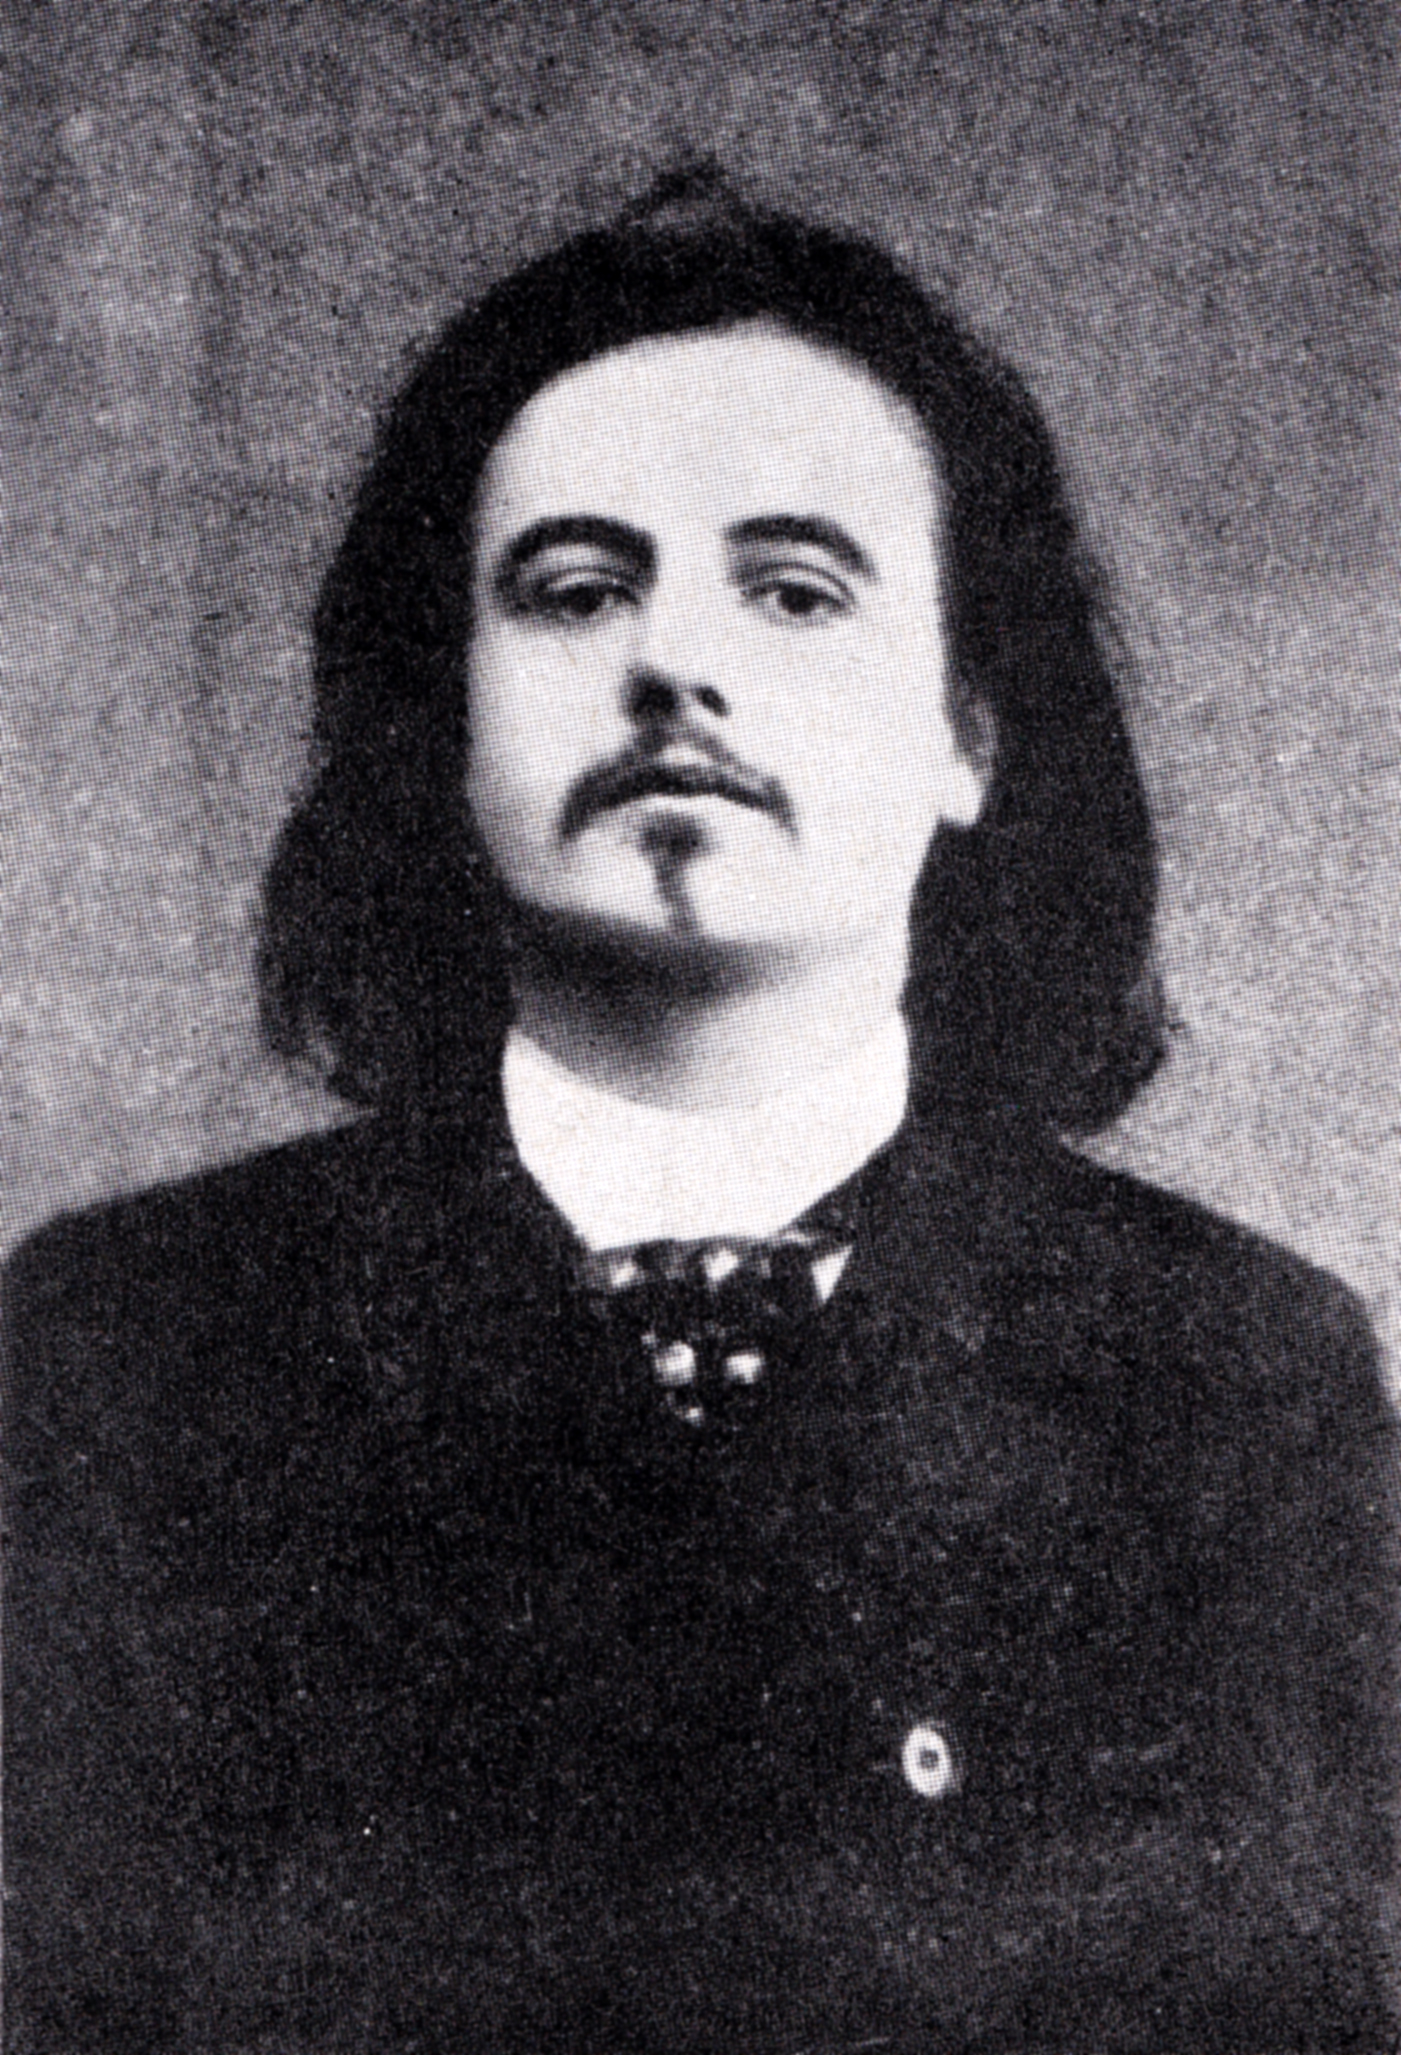 Image of Alfred Jarry from Wikidata